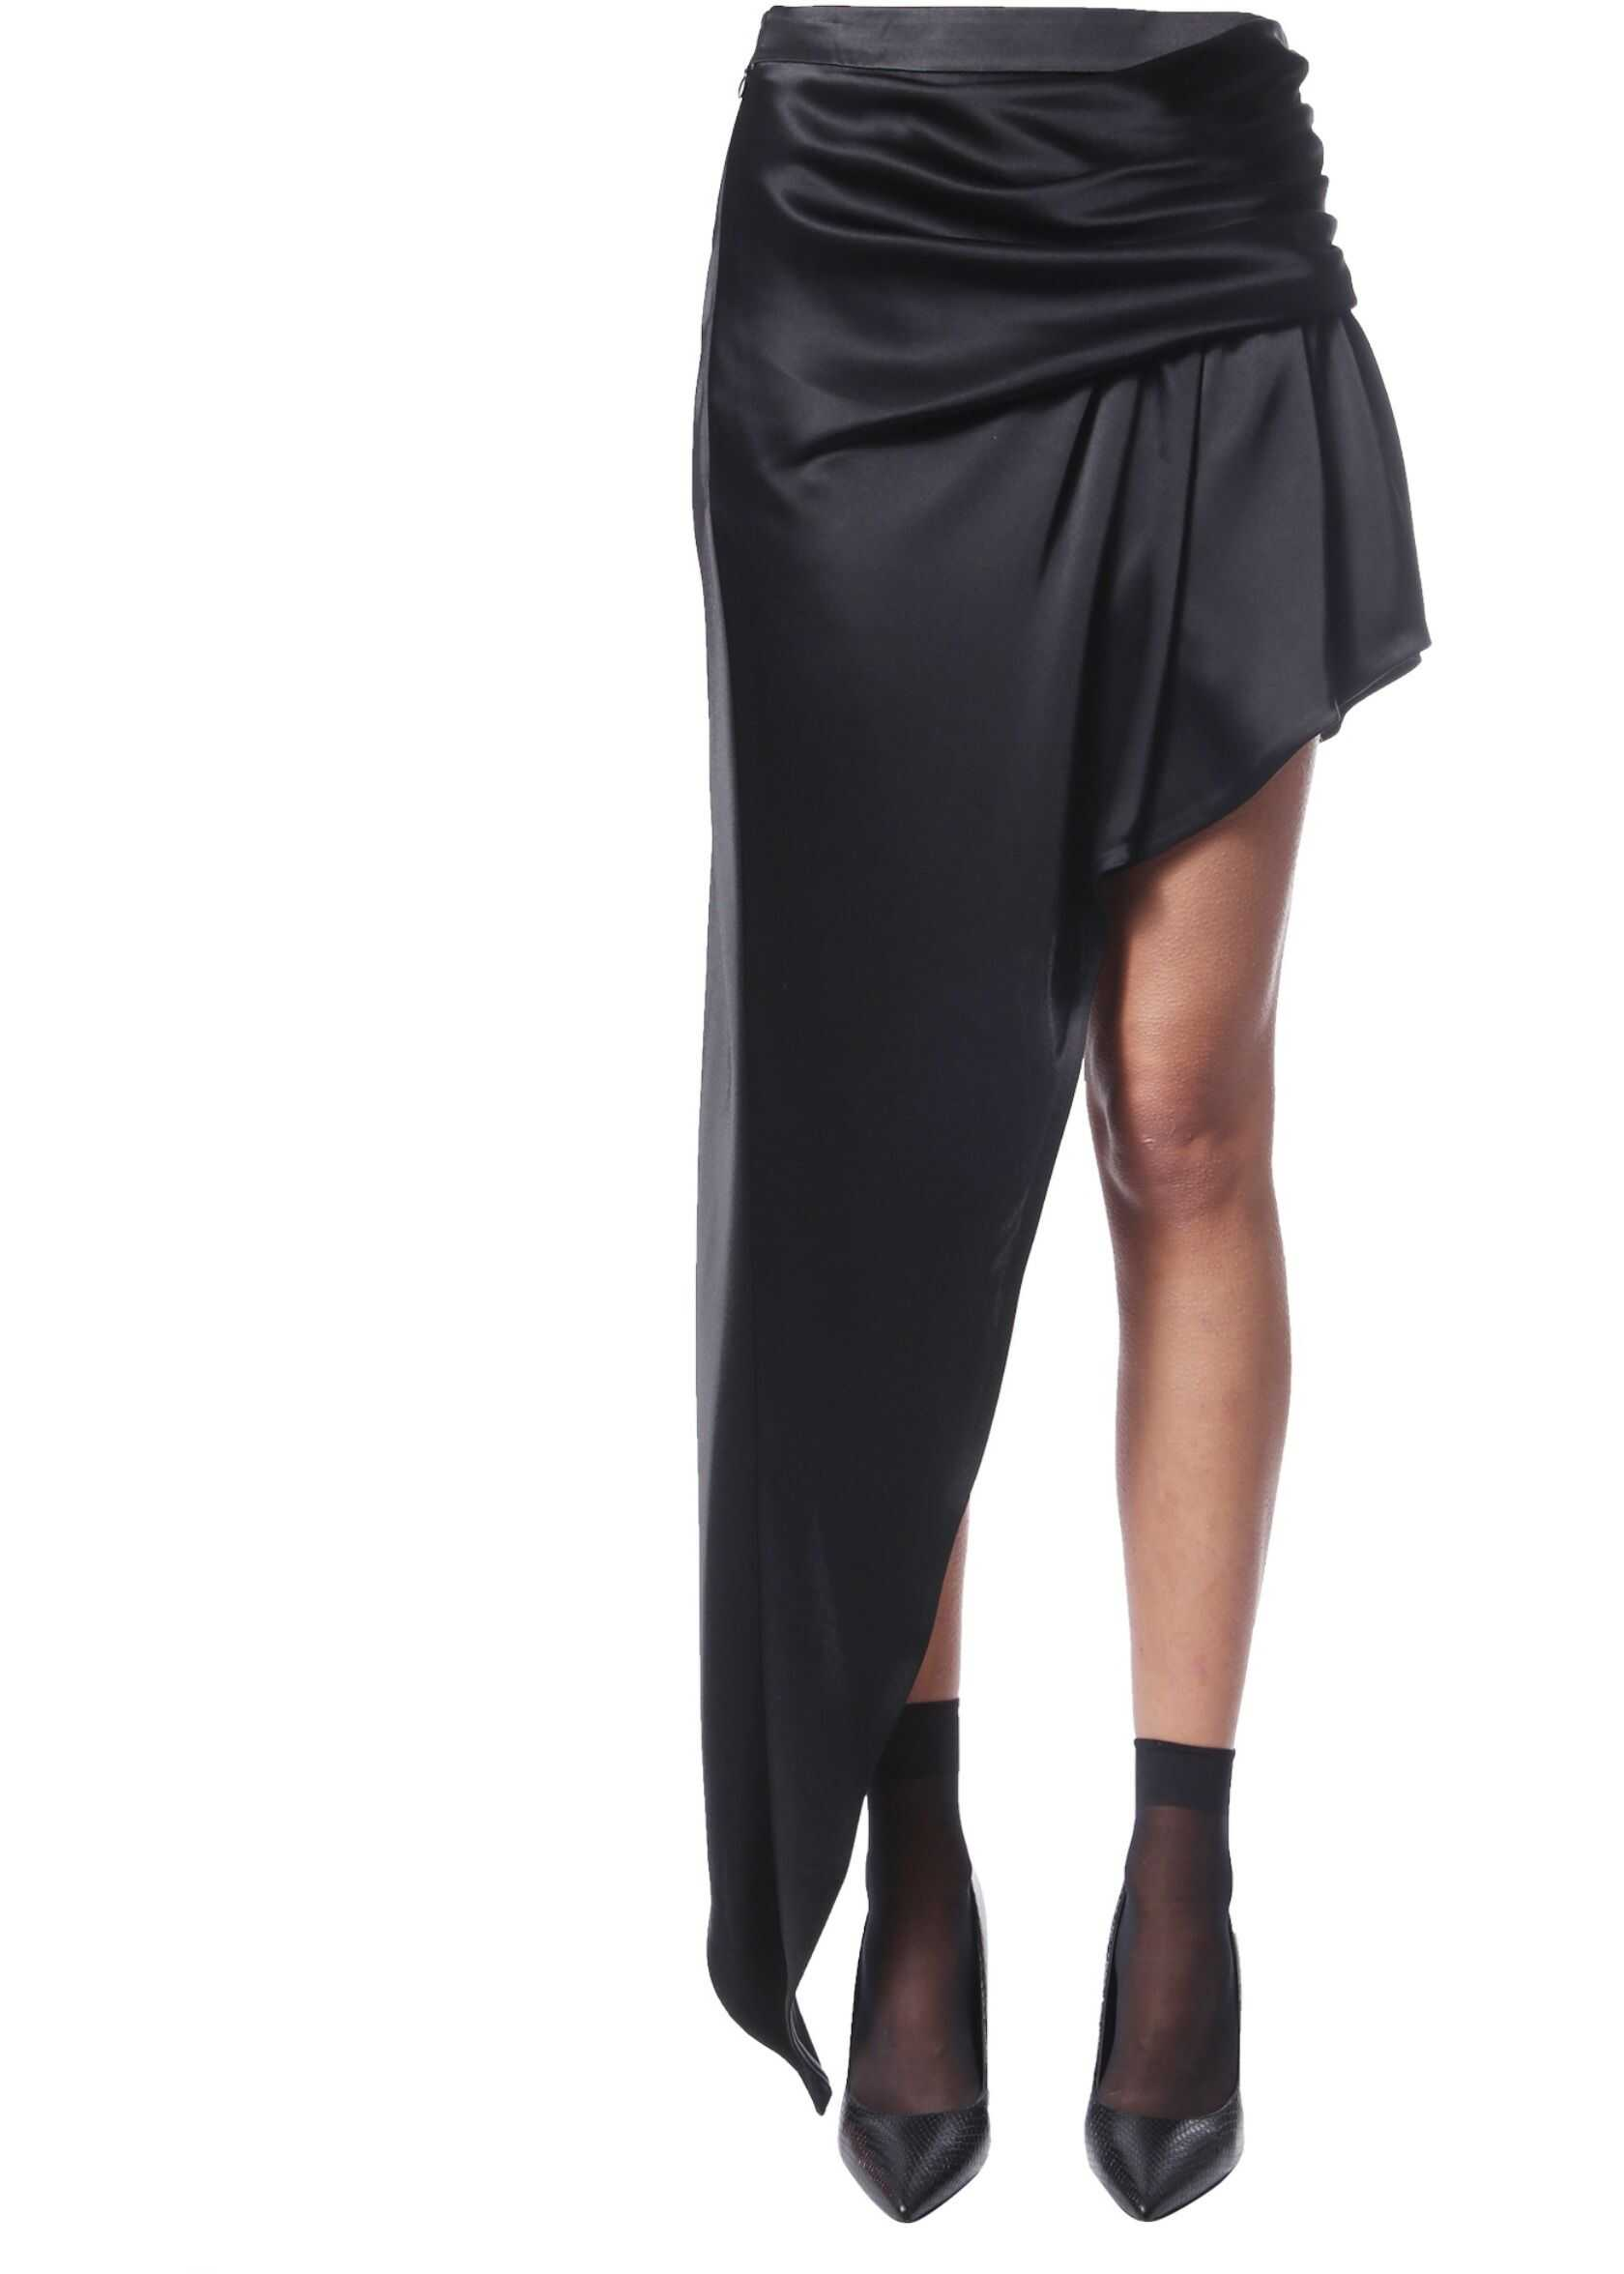 Alexander Wang Asymmetrical Skirt BLACK